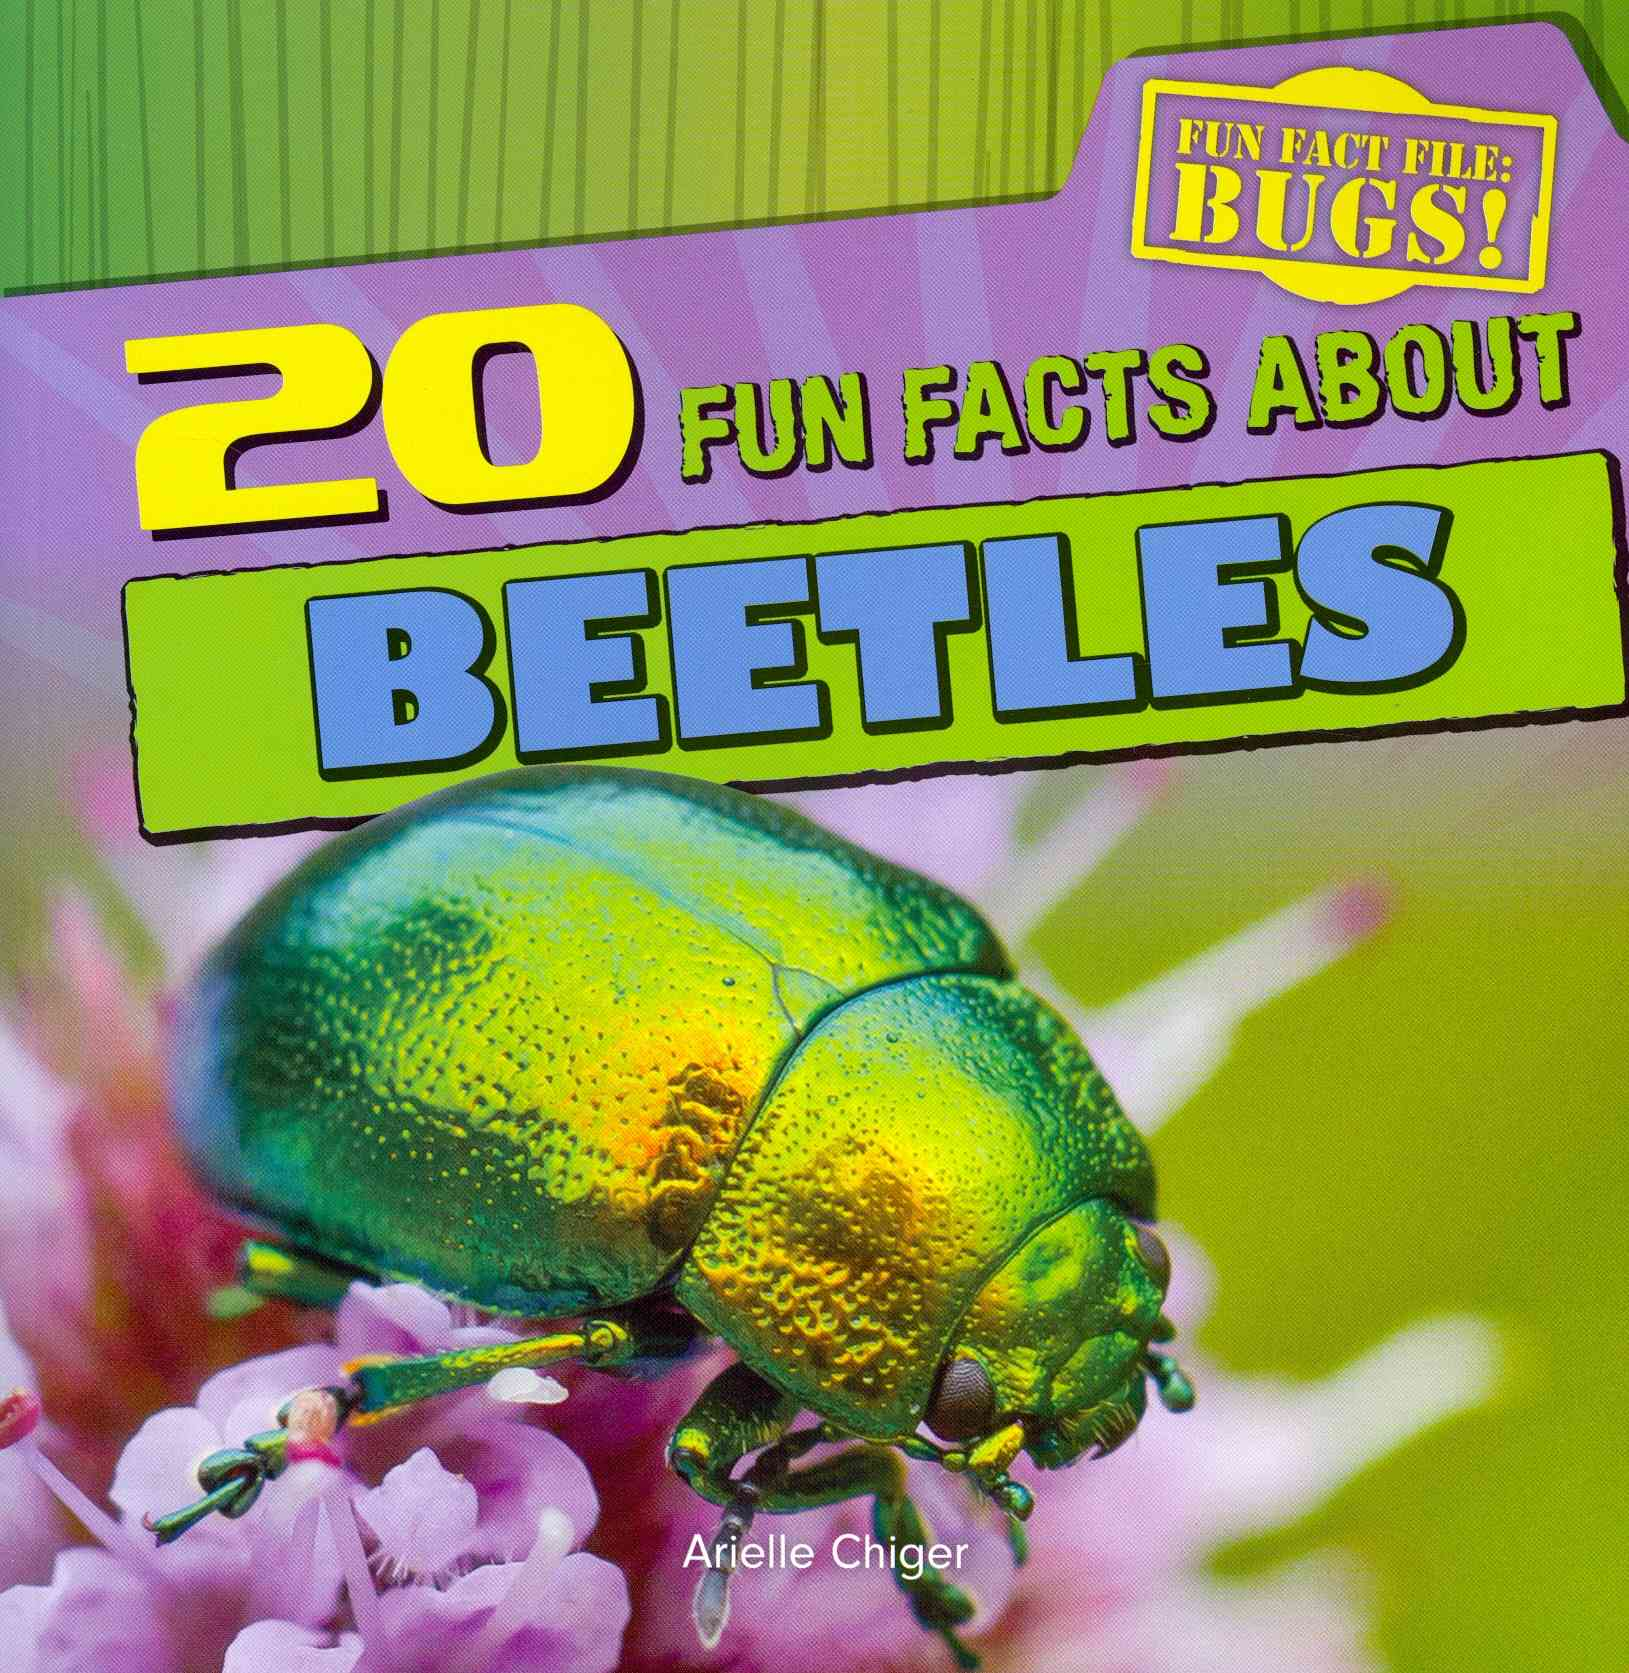 20 Fun Facts About Beetles By Chiger, Arielle